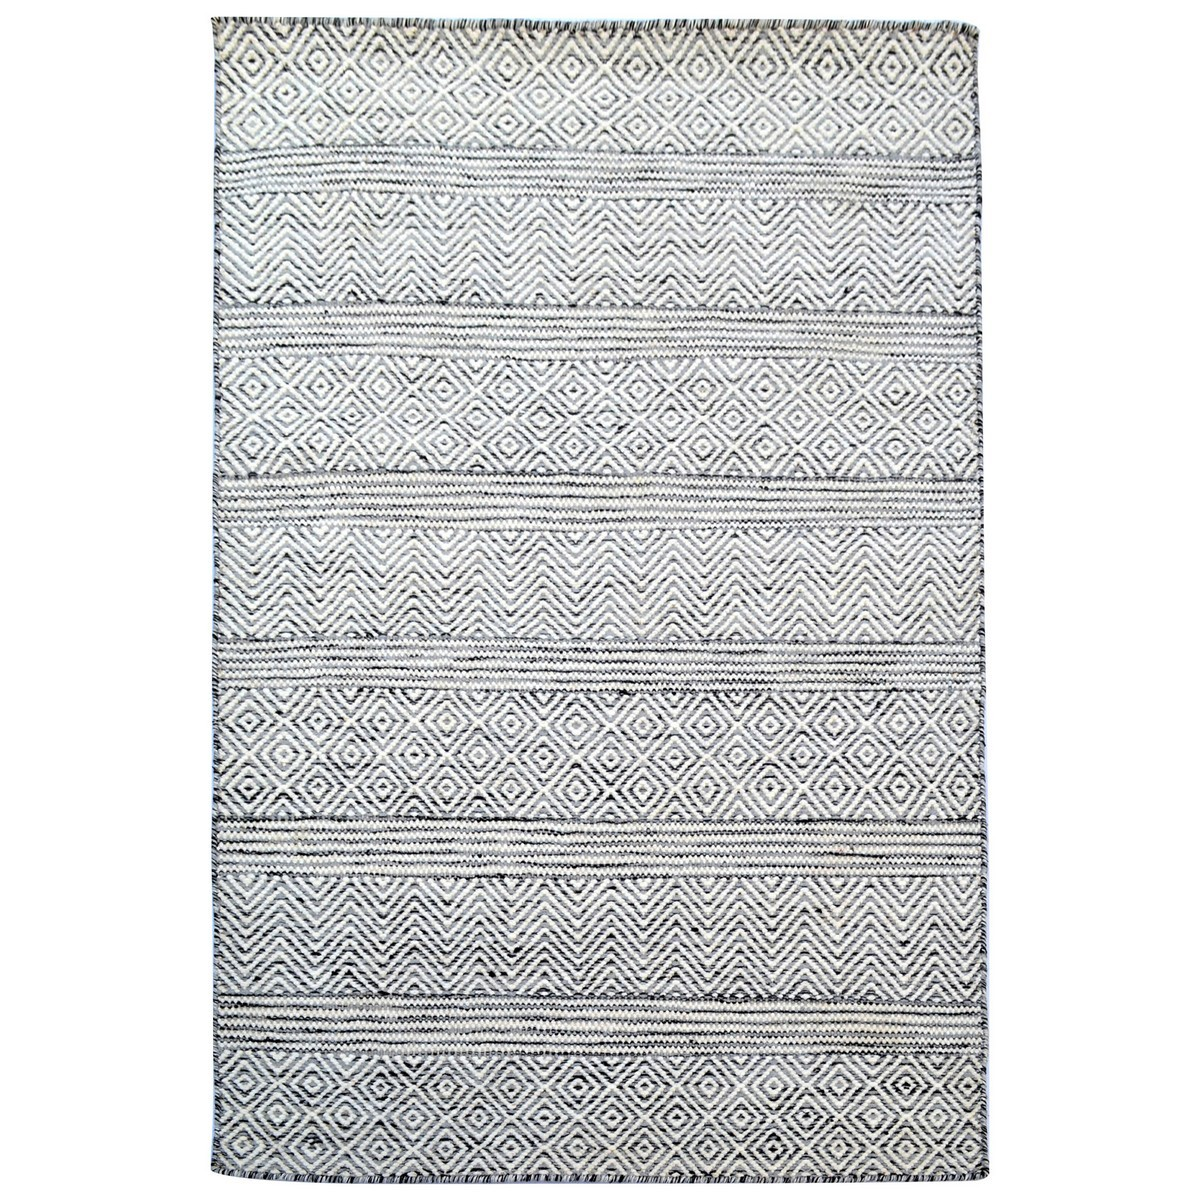 Khadi 1099 Handwoven Wool & Sari Silk Rug, 190x280cm, White / Black